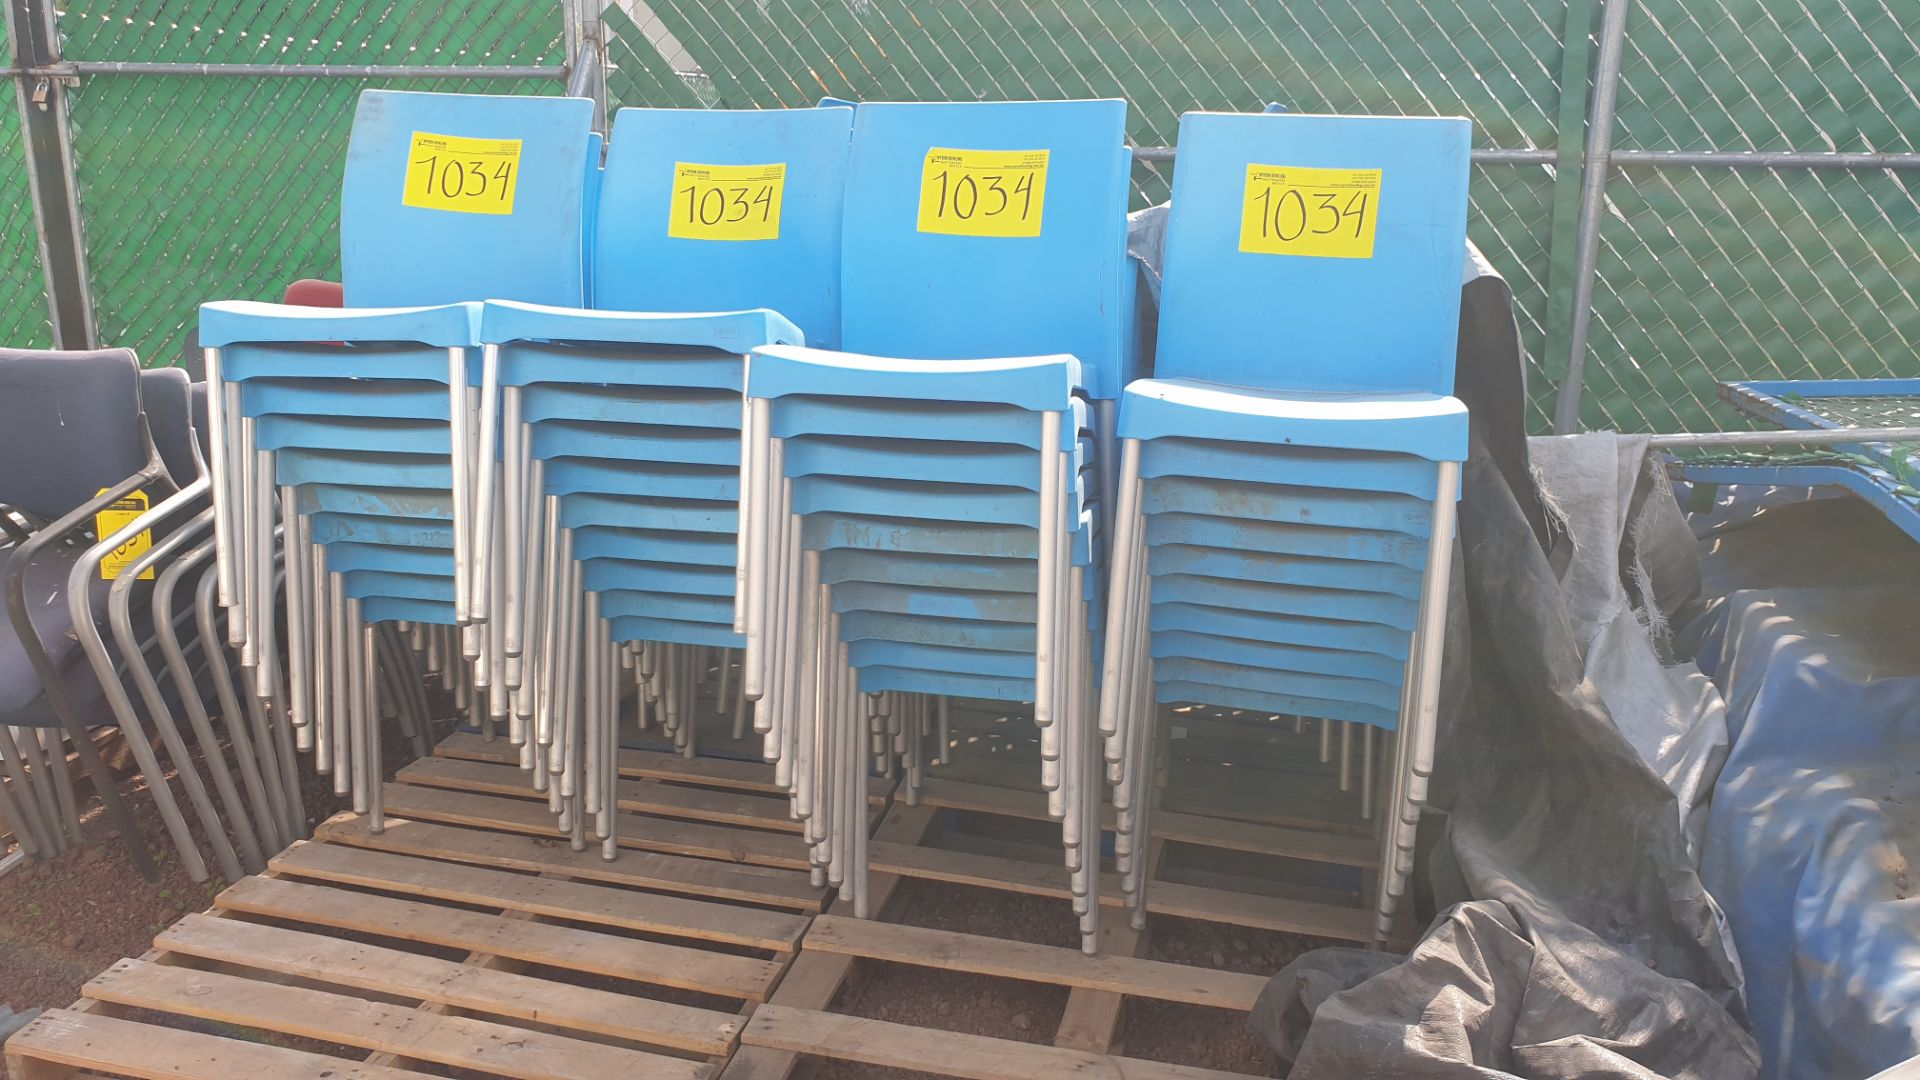 Lot of 40 blue plastic chairs, includes 7 metal office chairs with upholstered back and seat - Image 4 of 6